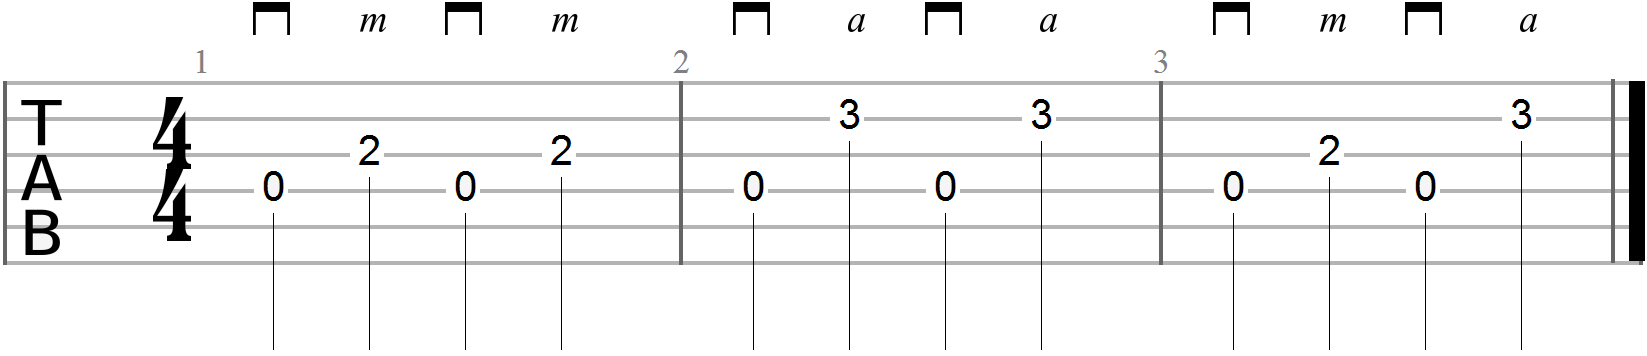 Hybrid Picking Example (Eric Johnson Technique)